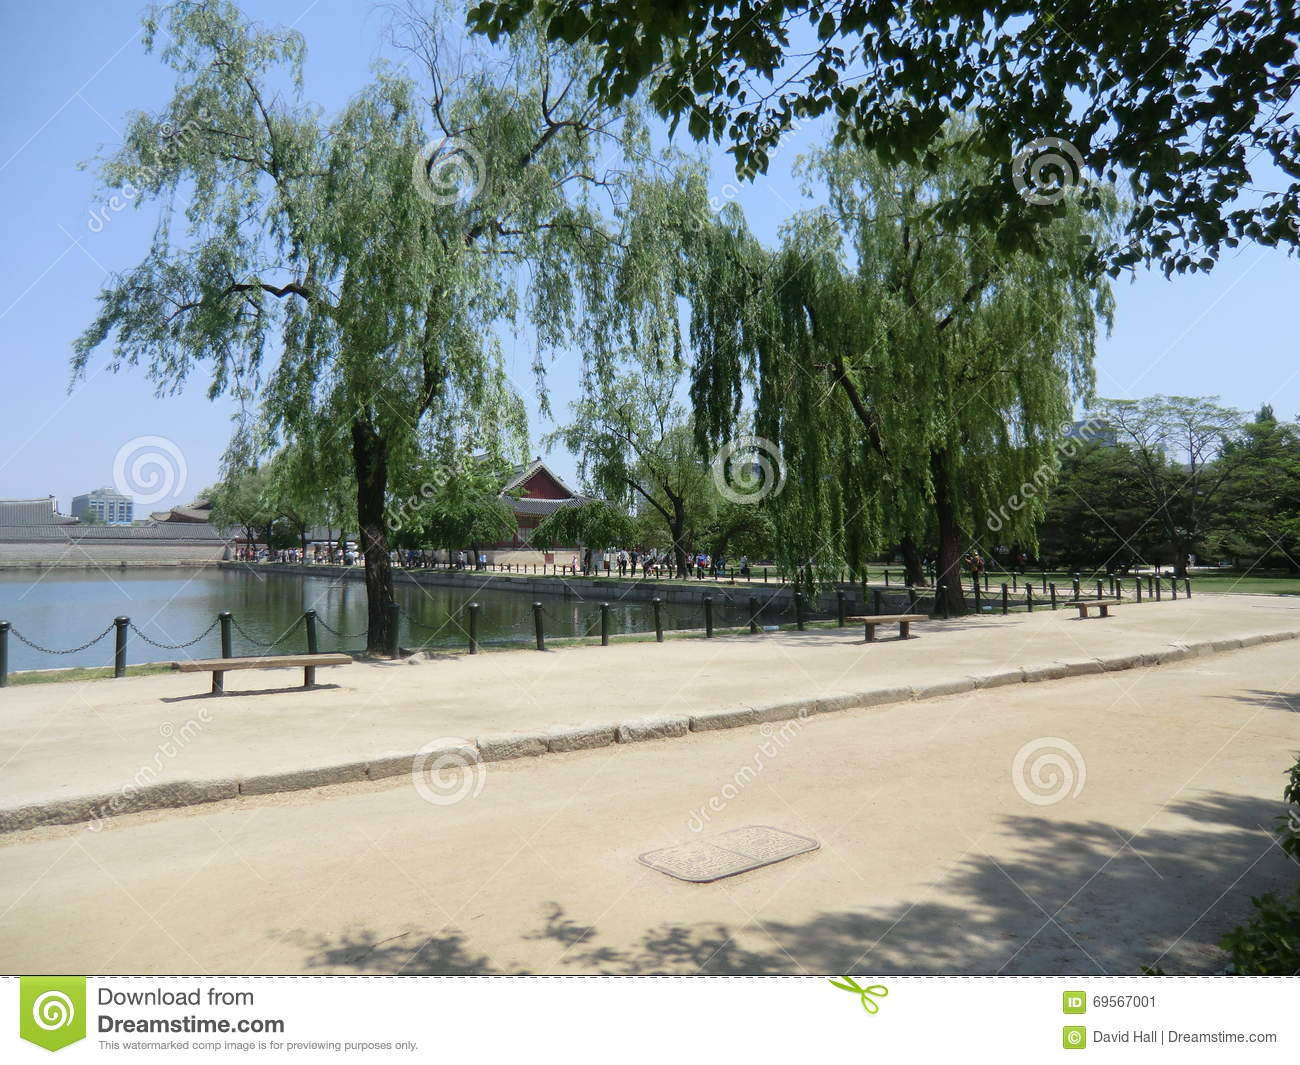 Weeping Willow Trees On The Edge Of A Lake In Seoul, South Korea